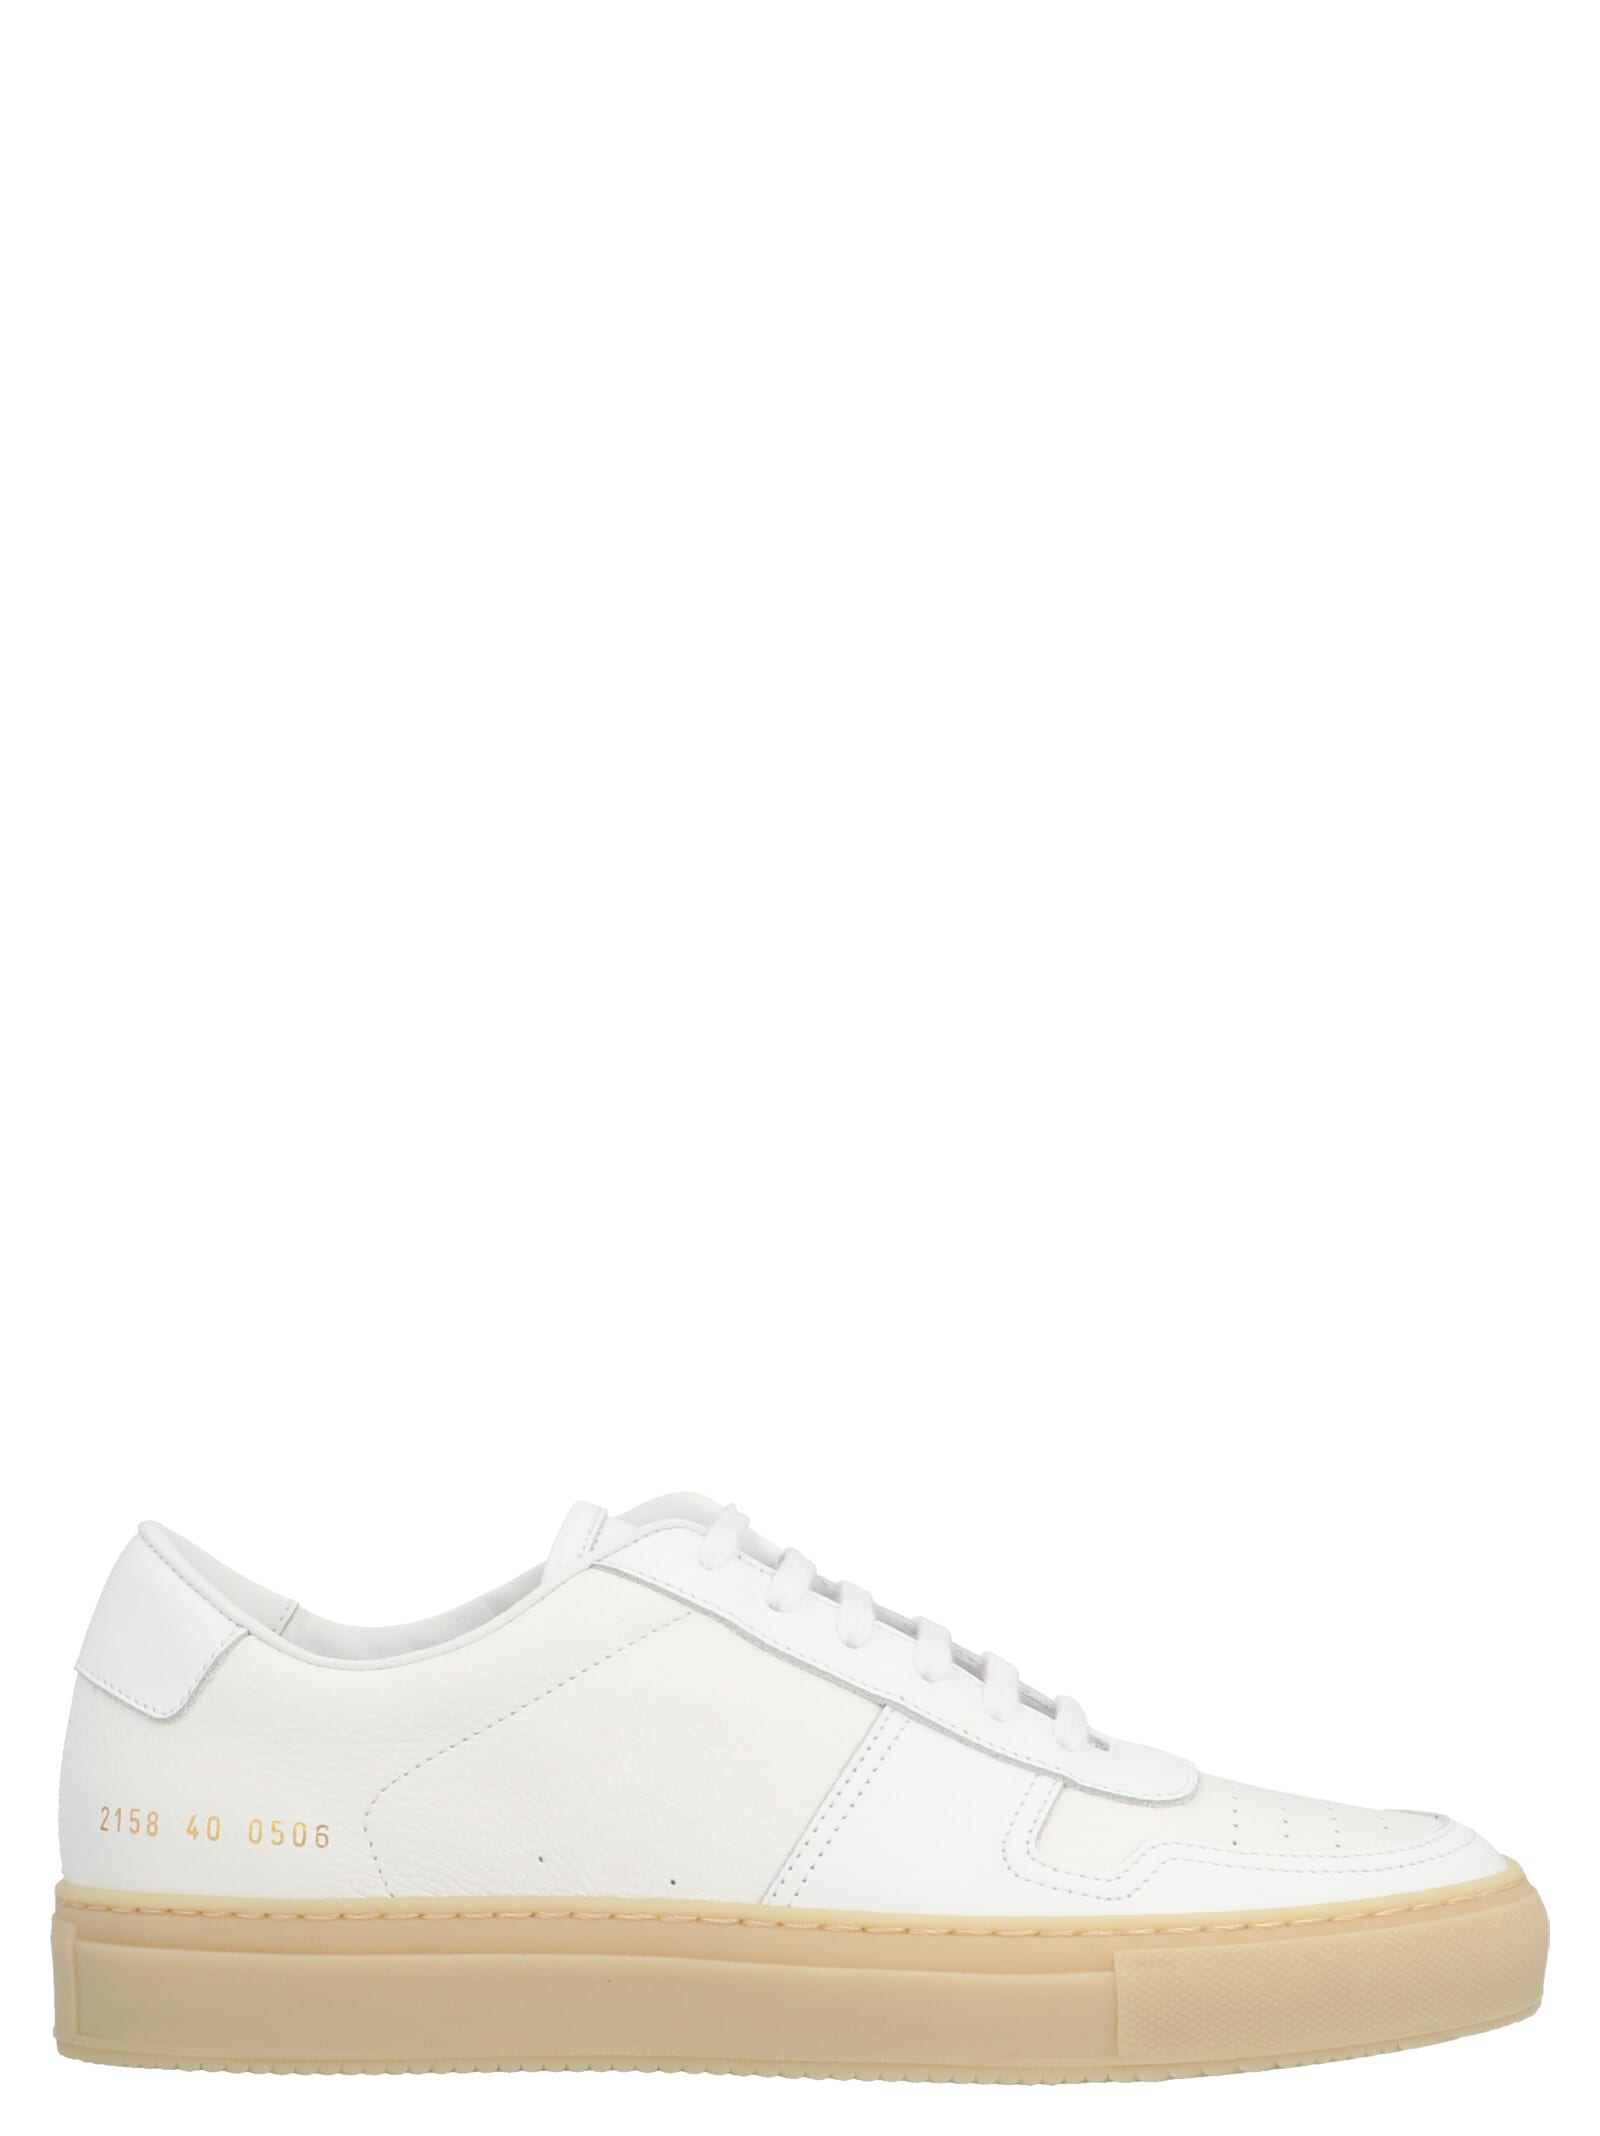 Common Projects bball Shoes